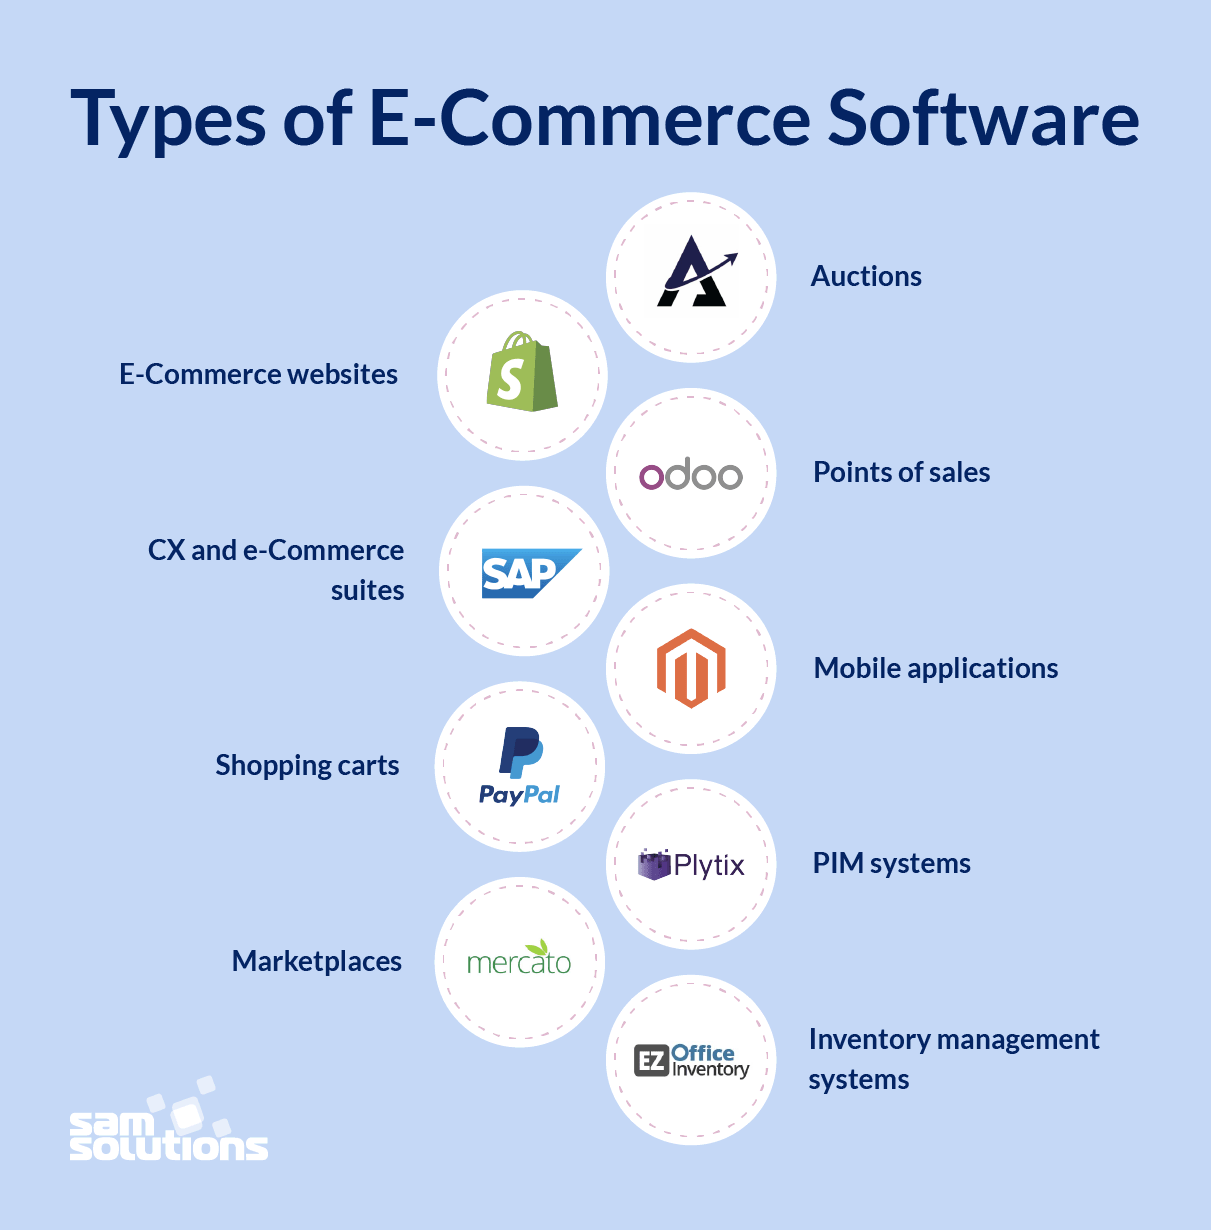 Types-of-e-commerce-software-photo